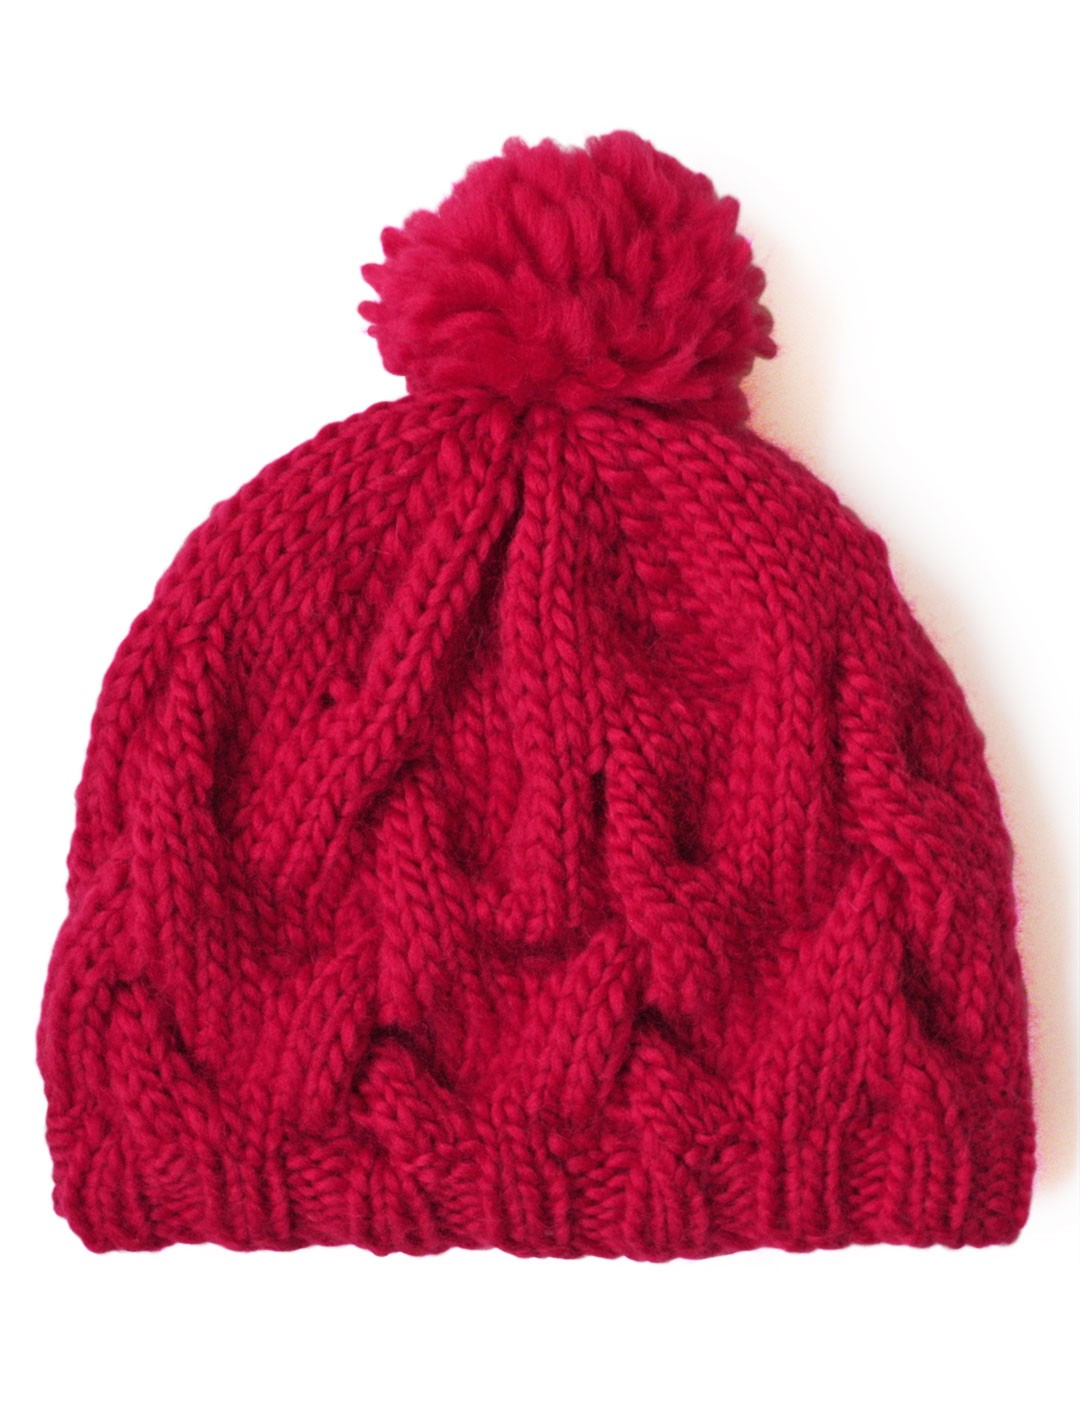 Patons Free Knitting Patterns : Patons Cushy Cable Hat, Knit Pattern Yarnspirations